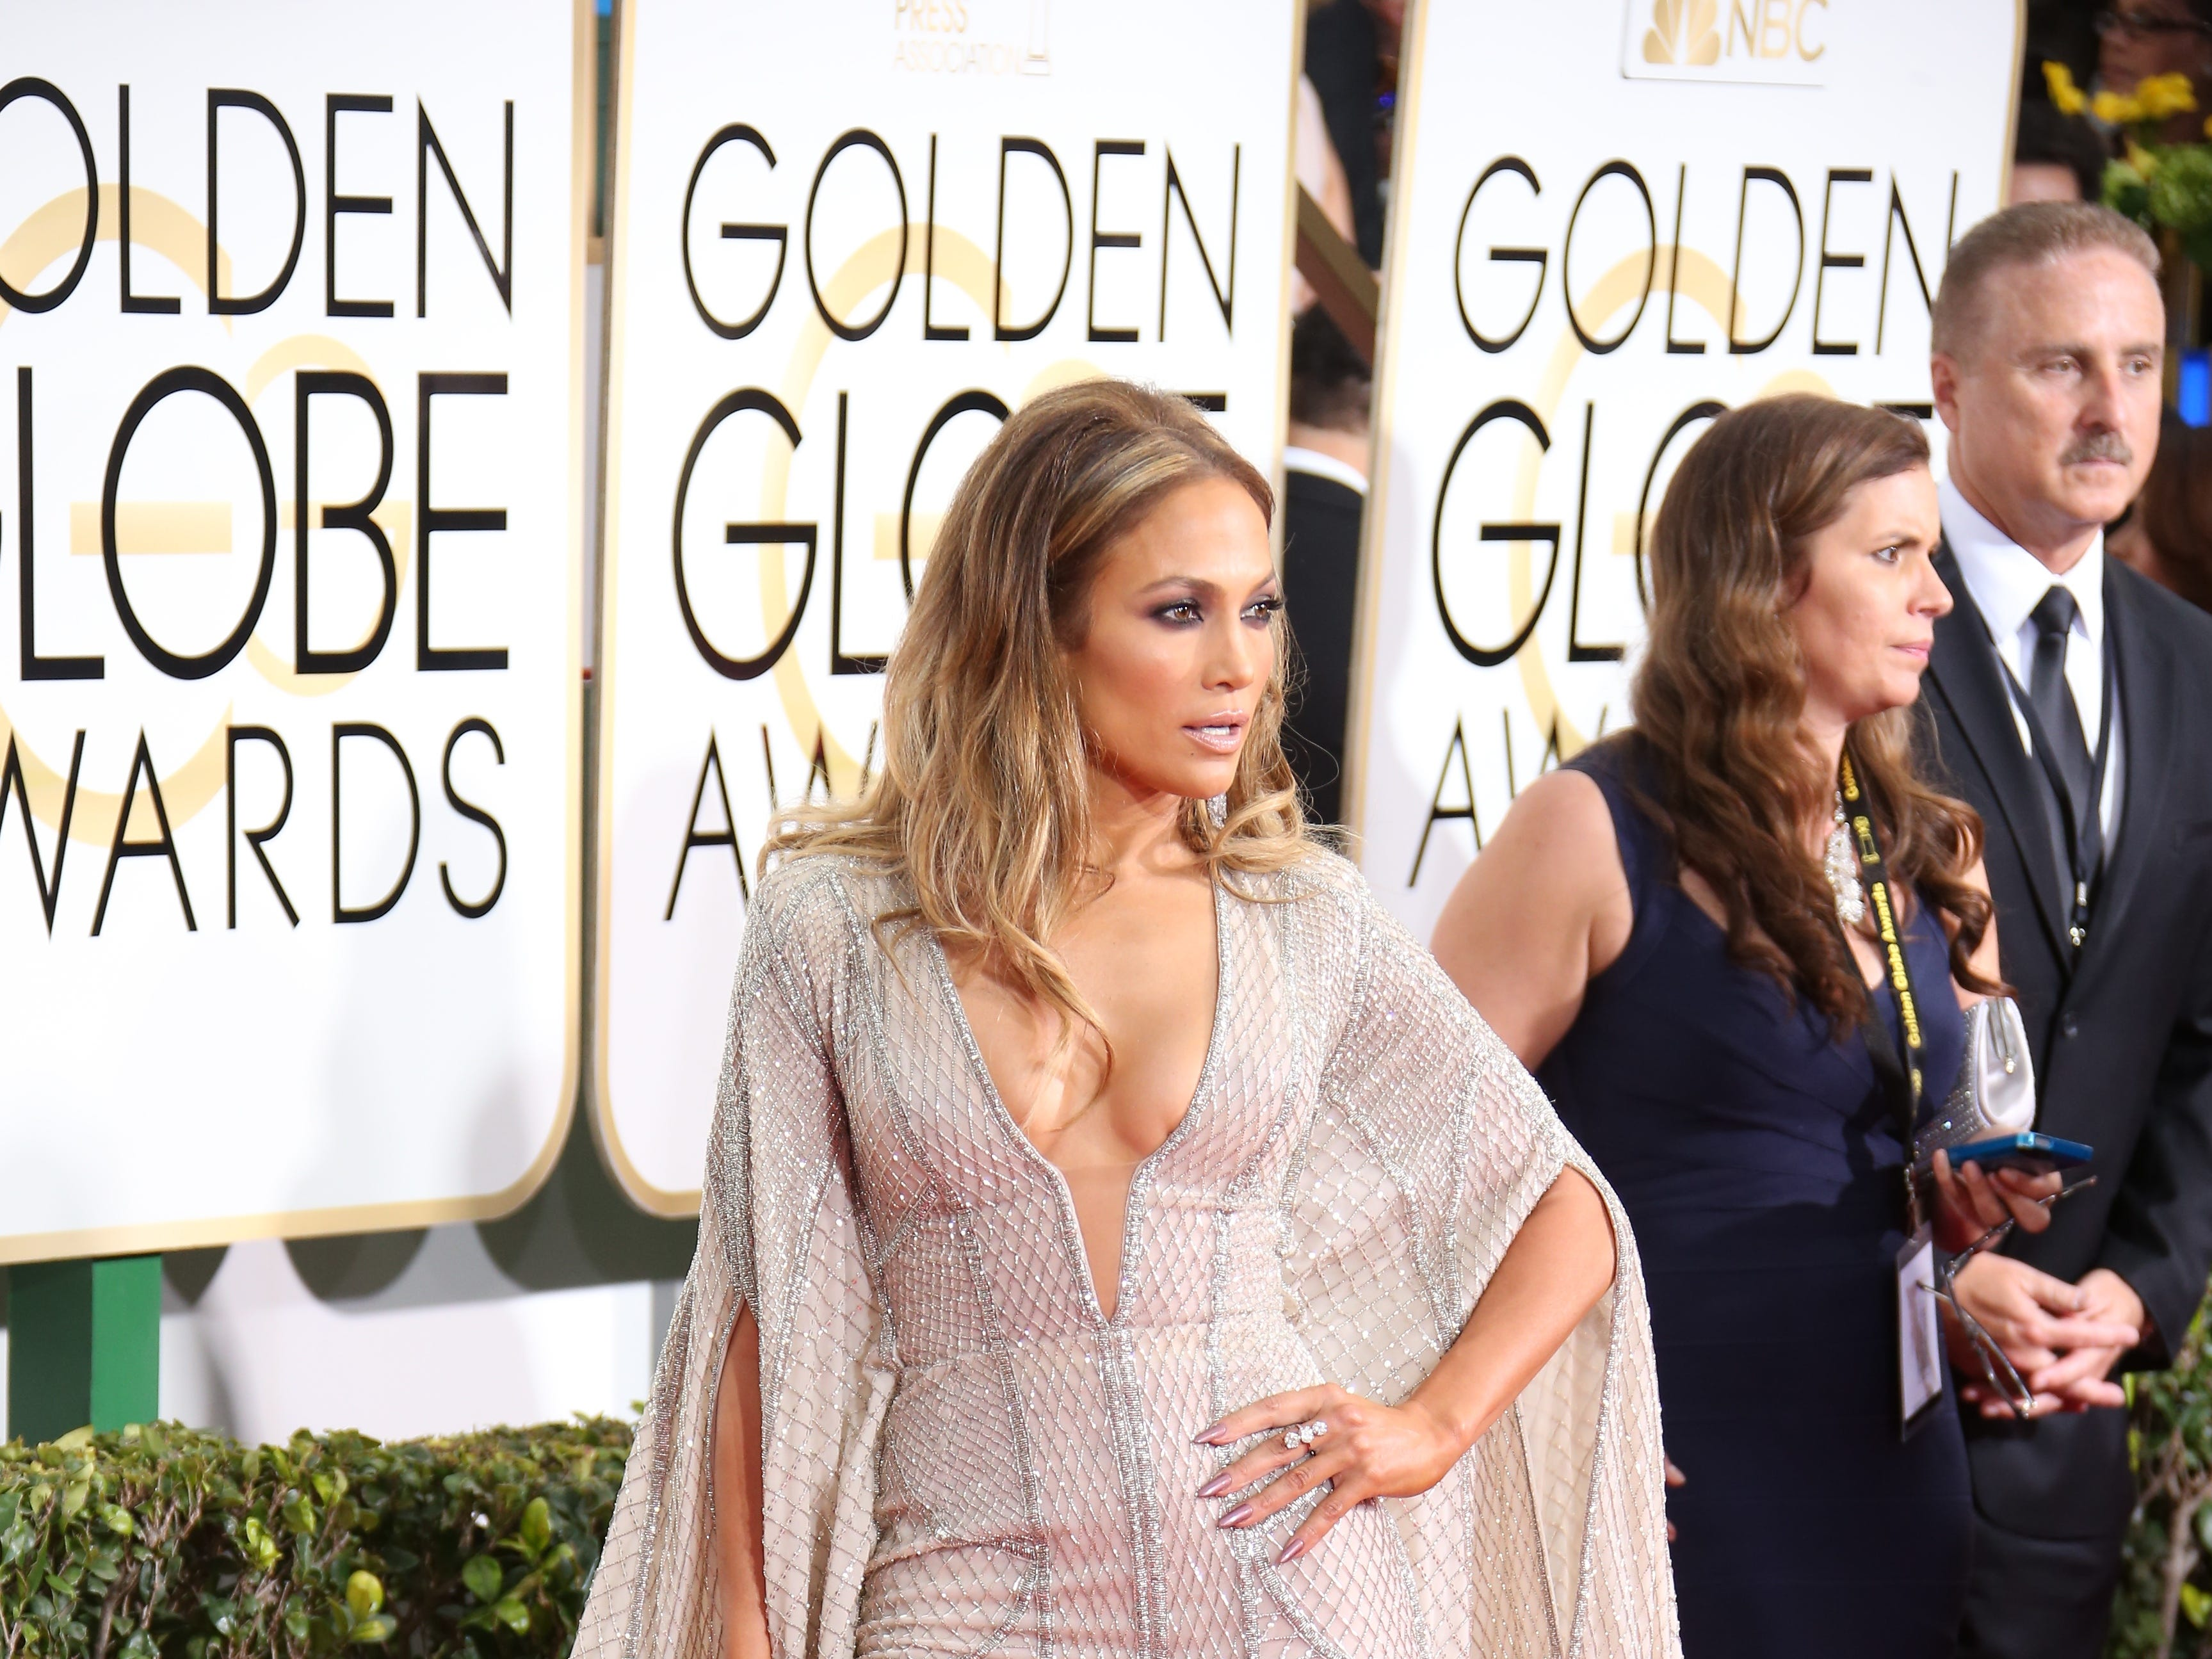 1/11/15 4:27:19 PM -- Los Angeles, CA, U.S.A  -- Jennifer Lopez arrives at the 72nd annual Golden Globe Awards --      Photo by Dan MacMedan, USA TODAY contract photographer  ORG XMIT:  DM 132339 2015 GOLDEN GLOB 1/5/2015 (Via OlyDrop)